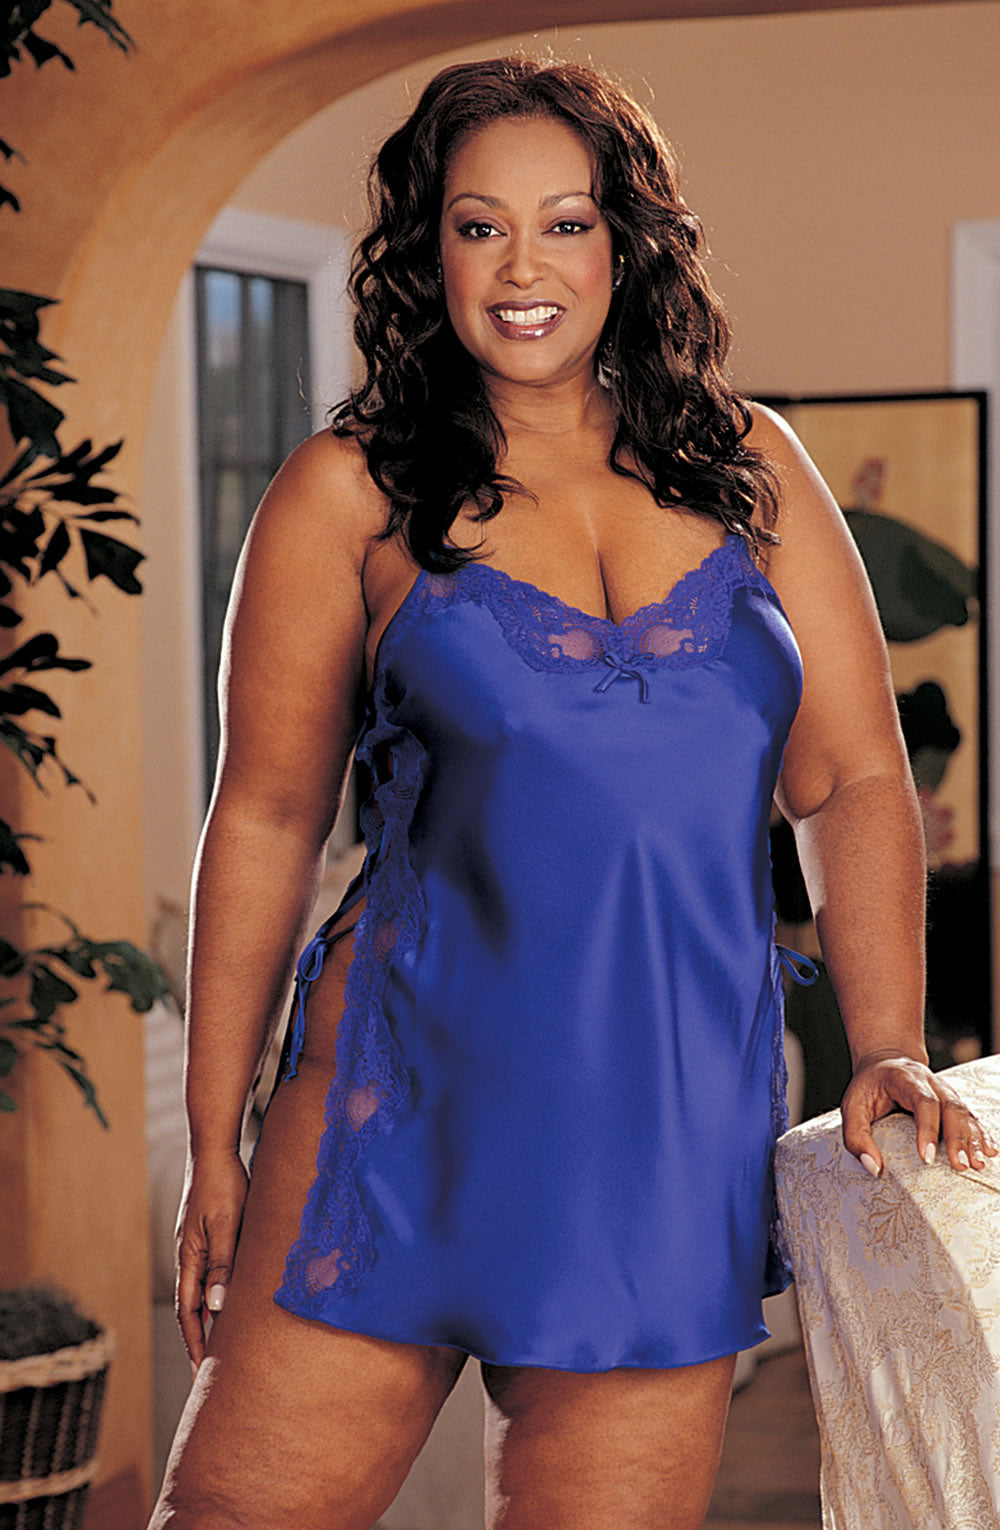 X20015 Chemise in Electric Blue by Shirley of Hollywood - Shirley of Hollywood - Katys Boutique Lingerie USA